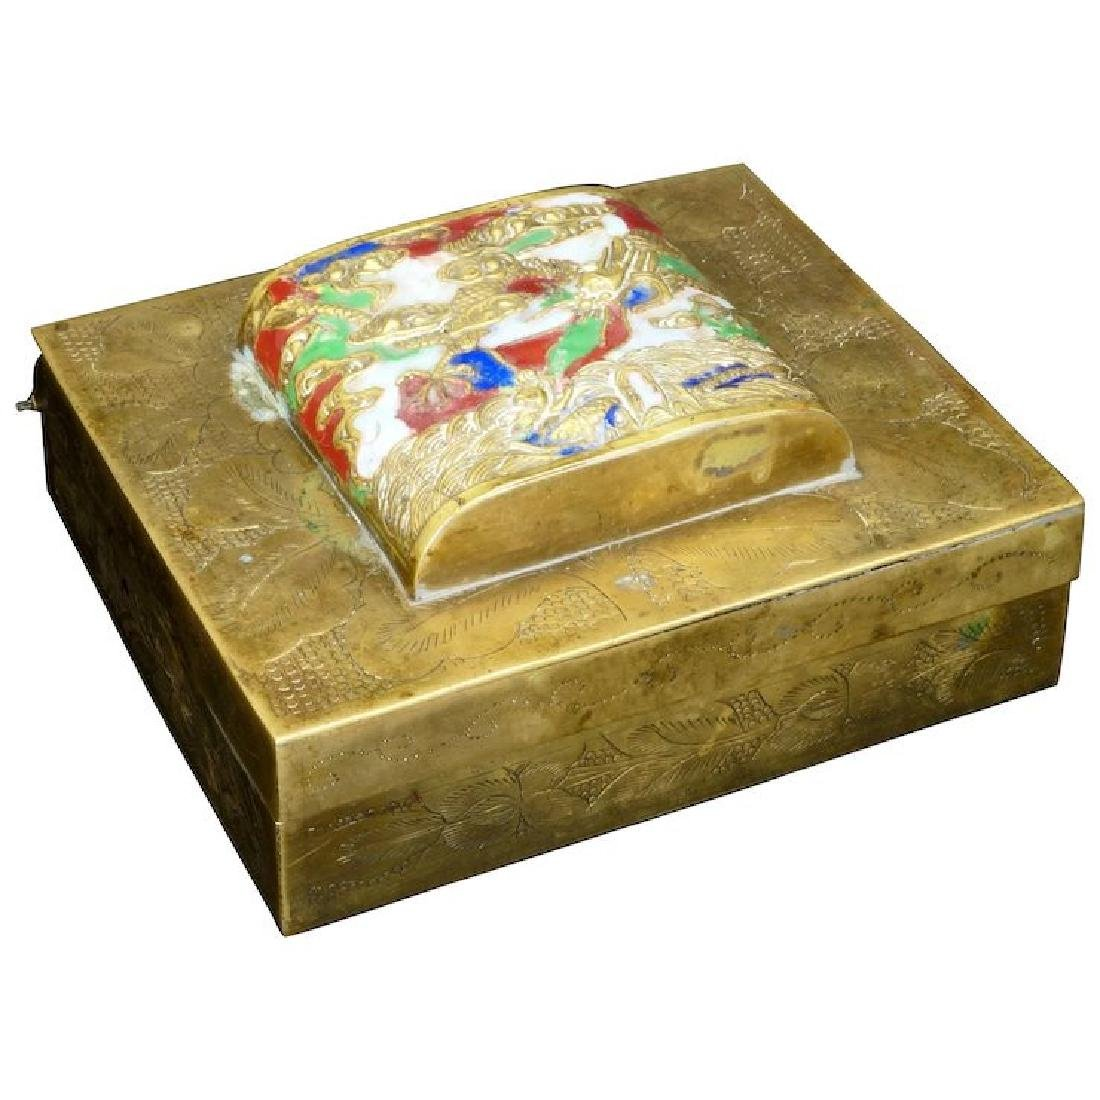 Chinese brass lidded box with enameled design of a